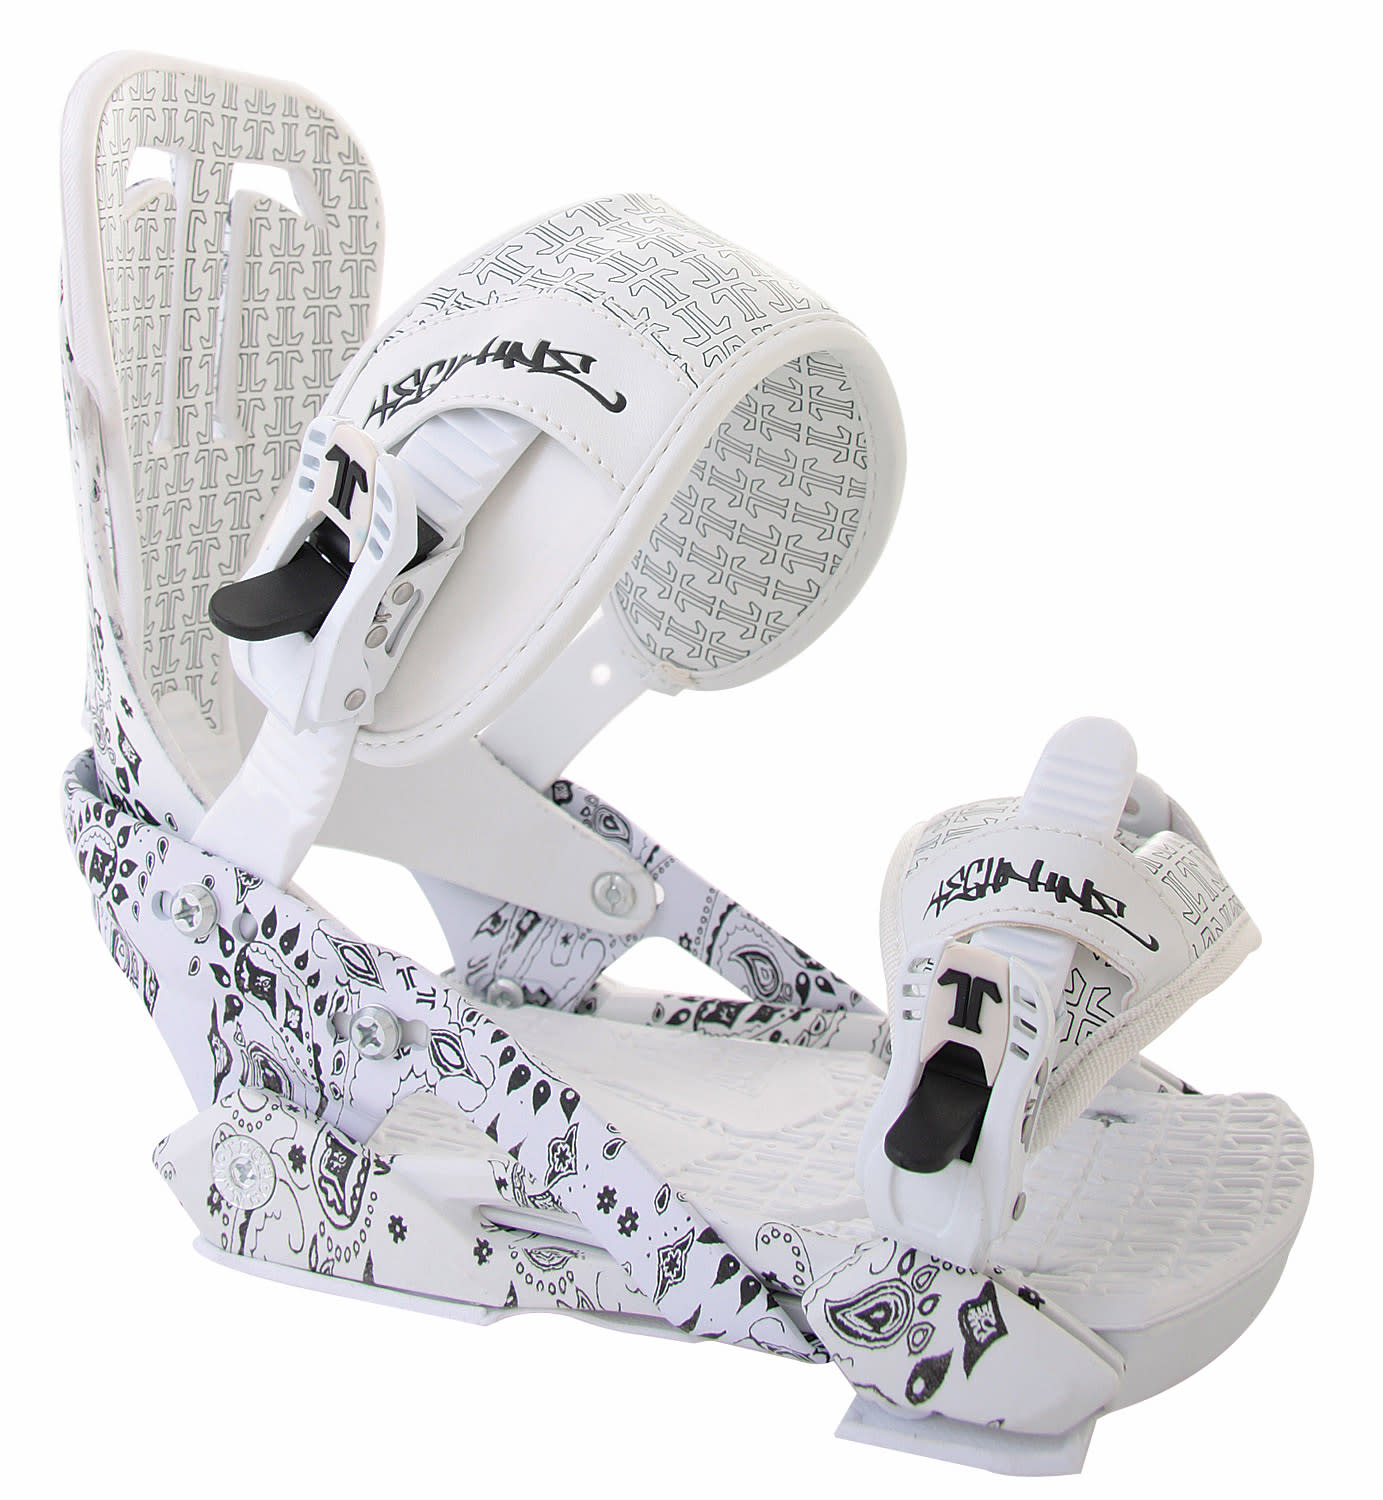 Technine Coulter Pro Military Snowboard Bindings